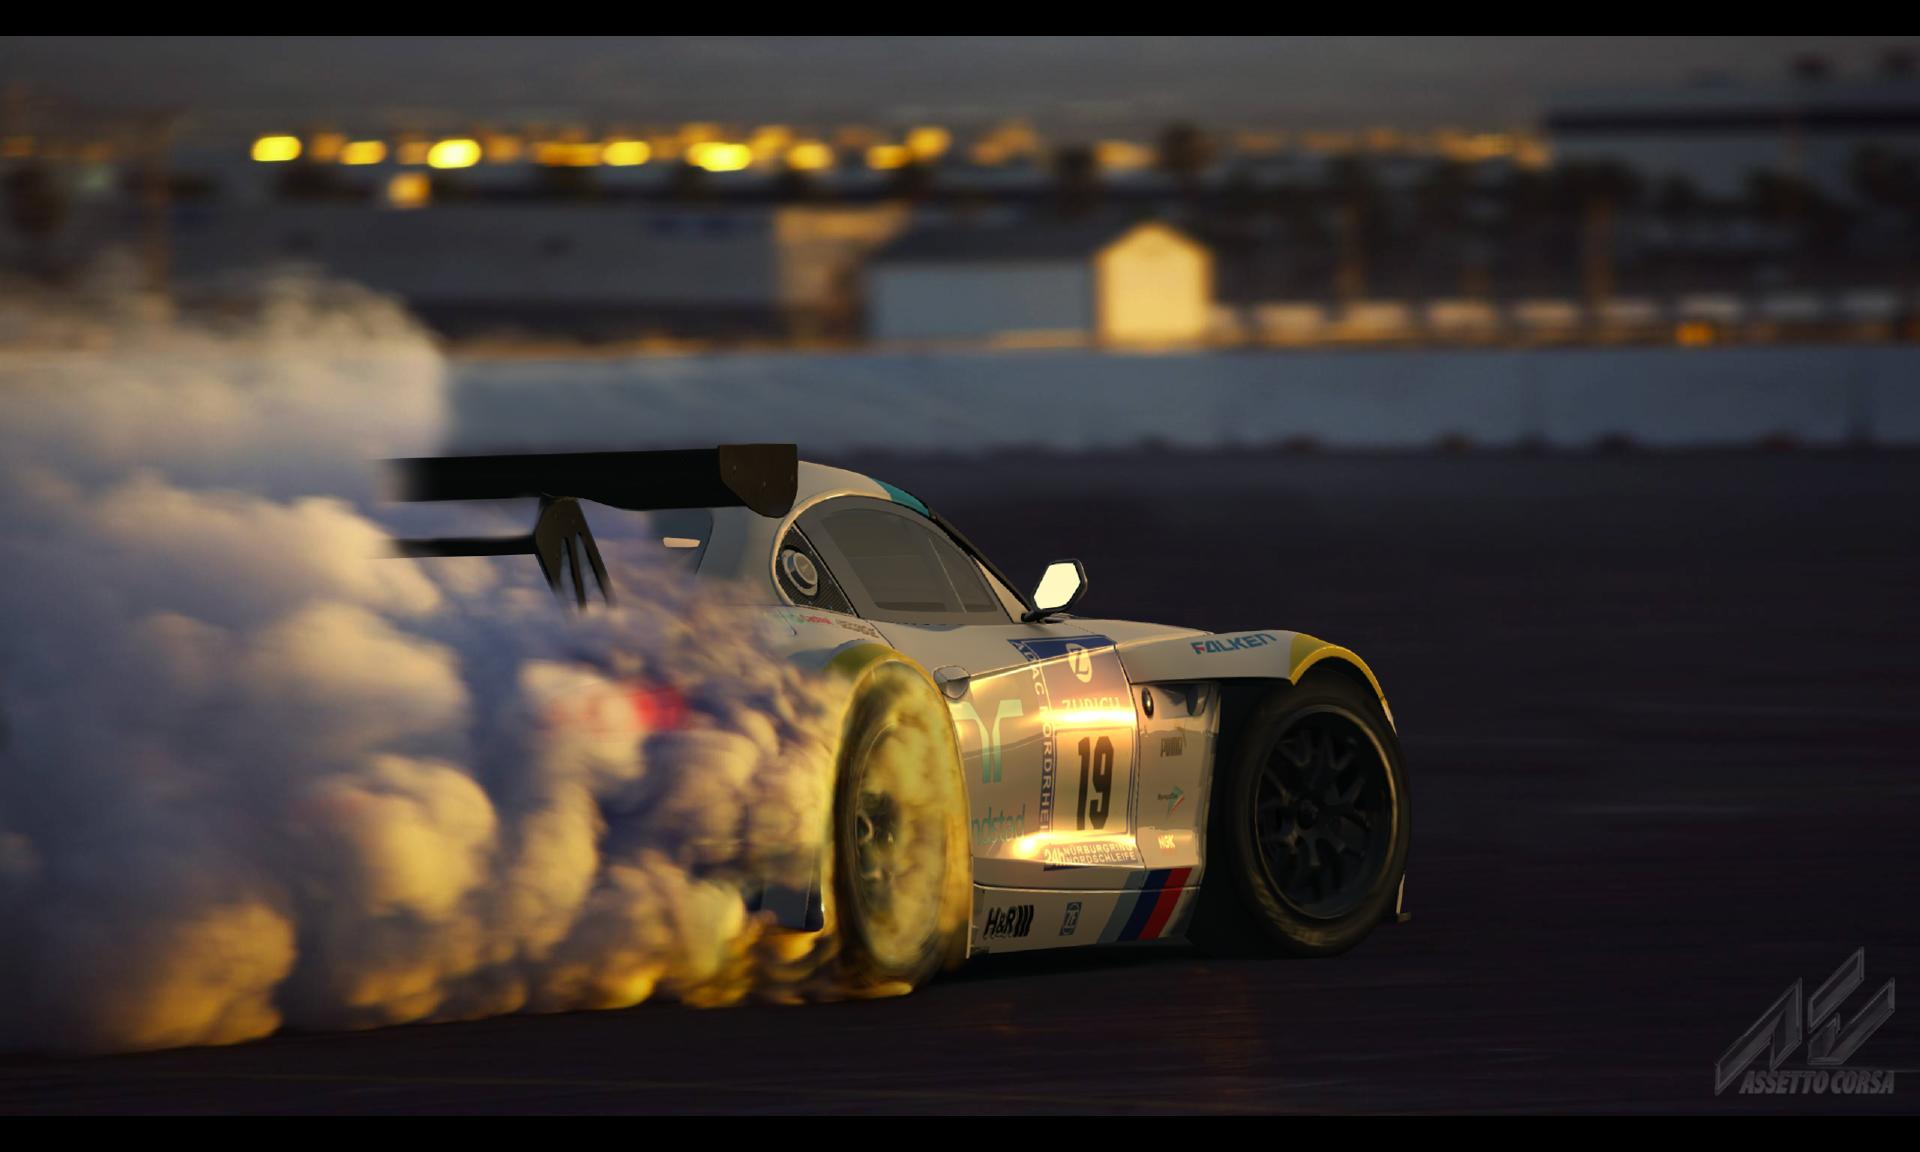 assetto corsa backgrounds full hd pictures